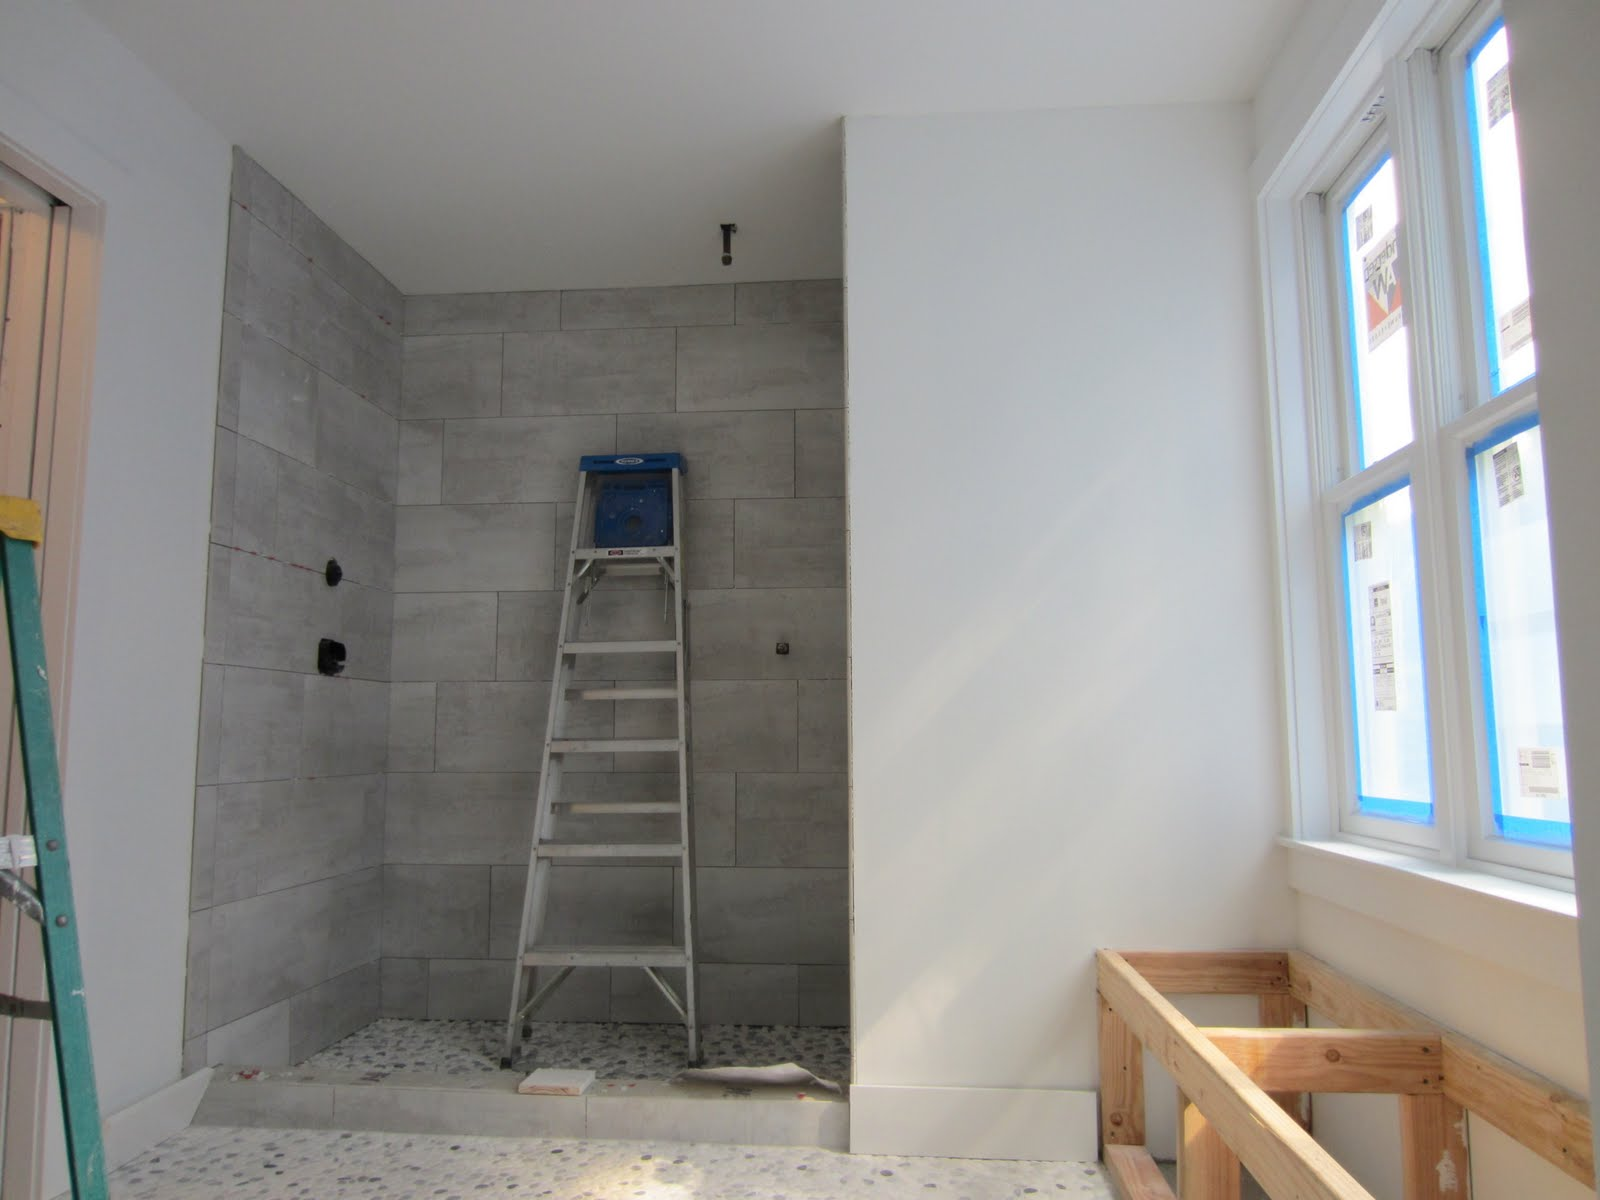 Gio gio design master bathroom progress for 12x24 bathroom tile ideas